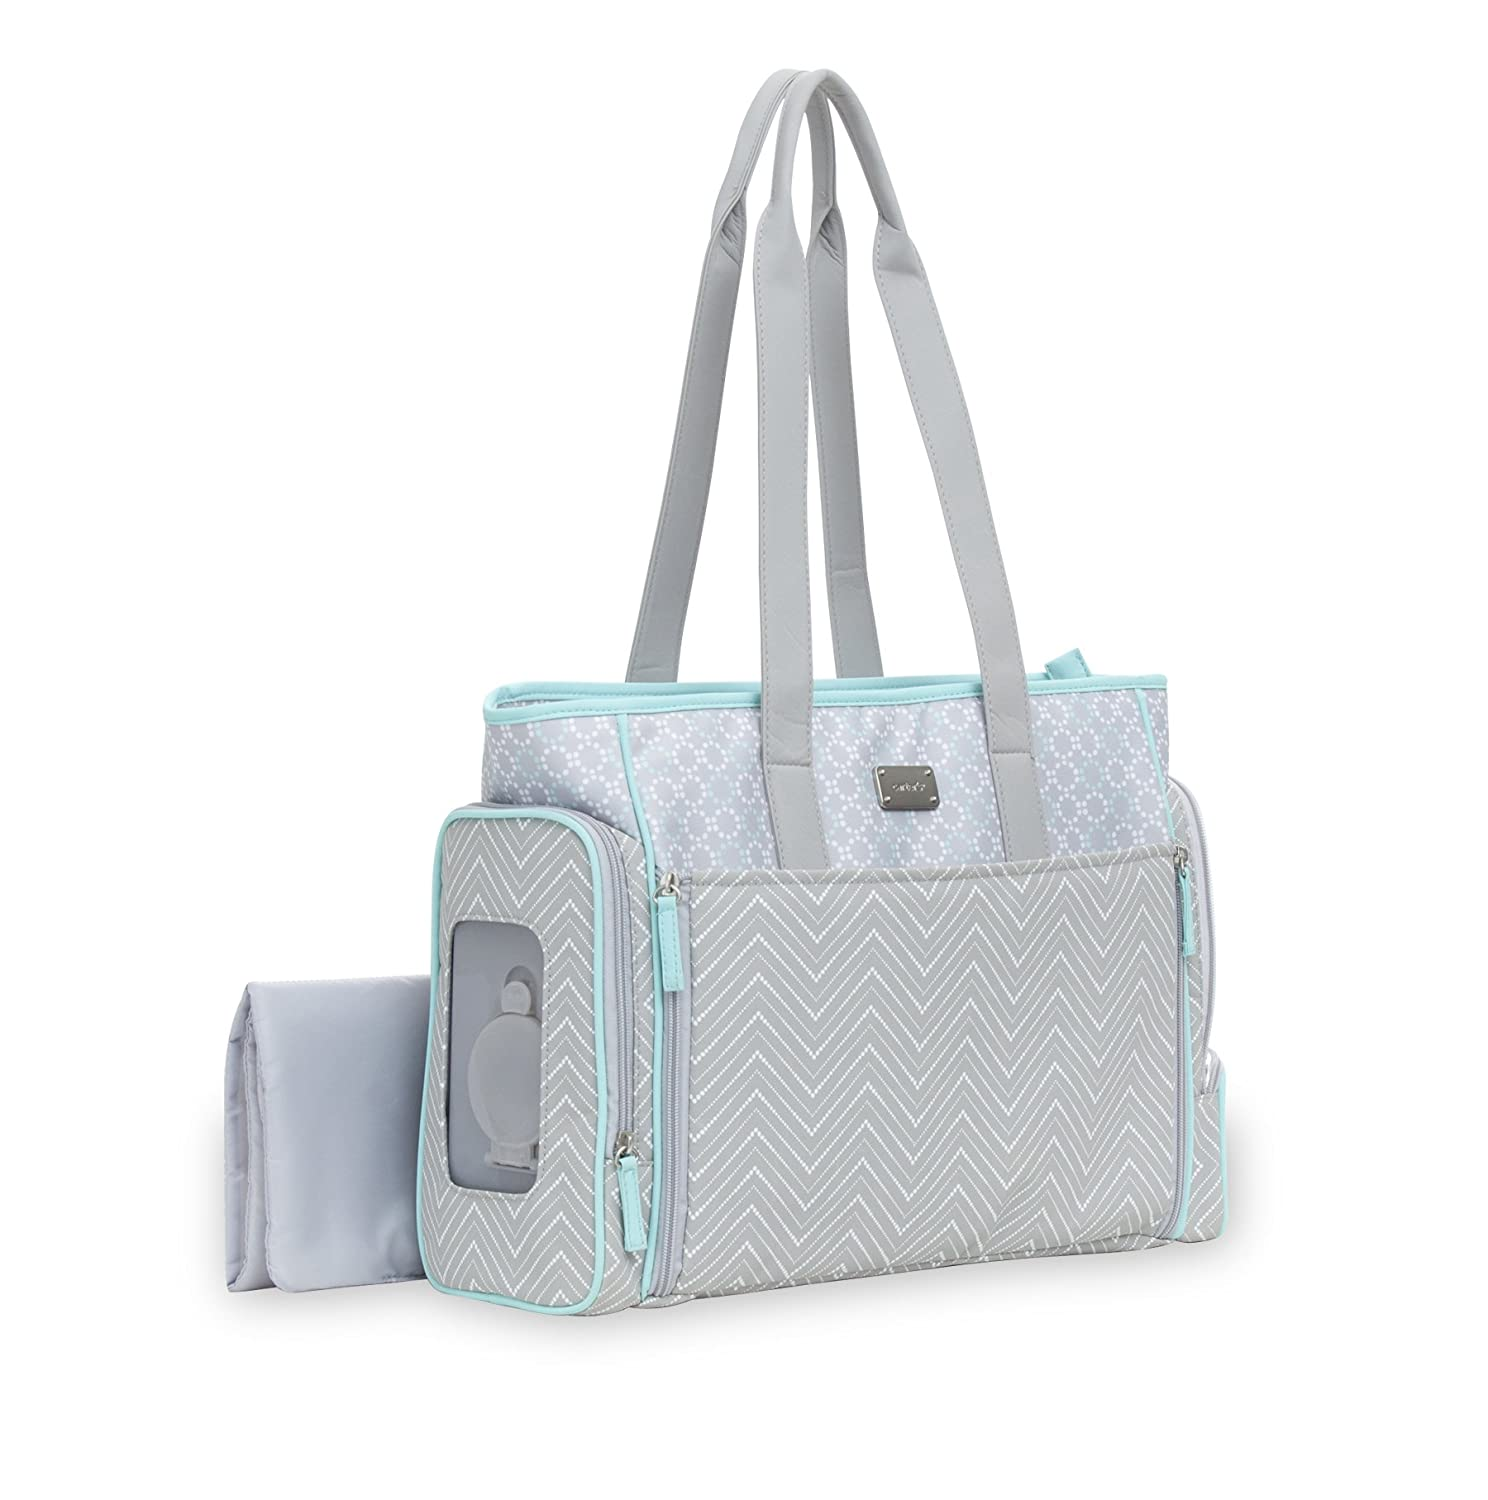 33663efcb785 Best Diaper Bags  Top Reviewed in 2019